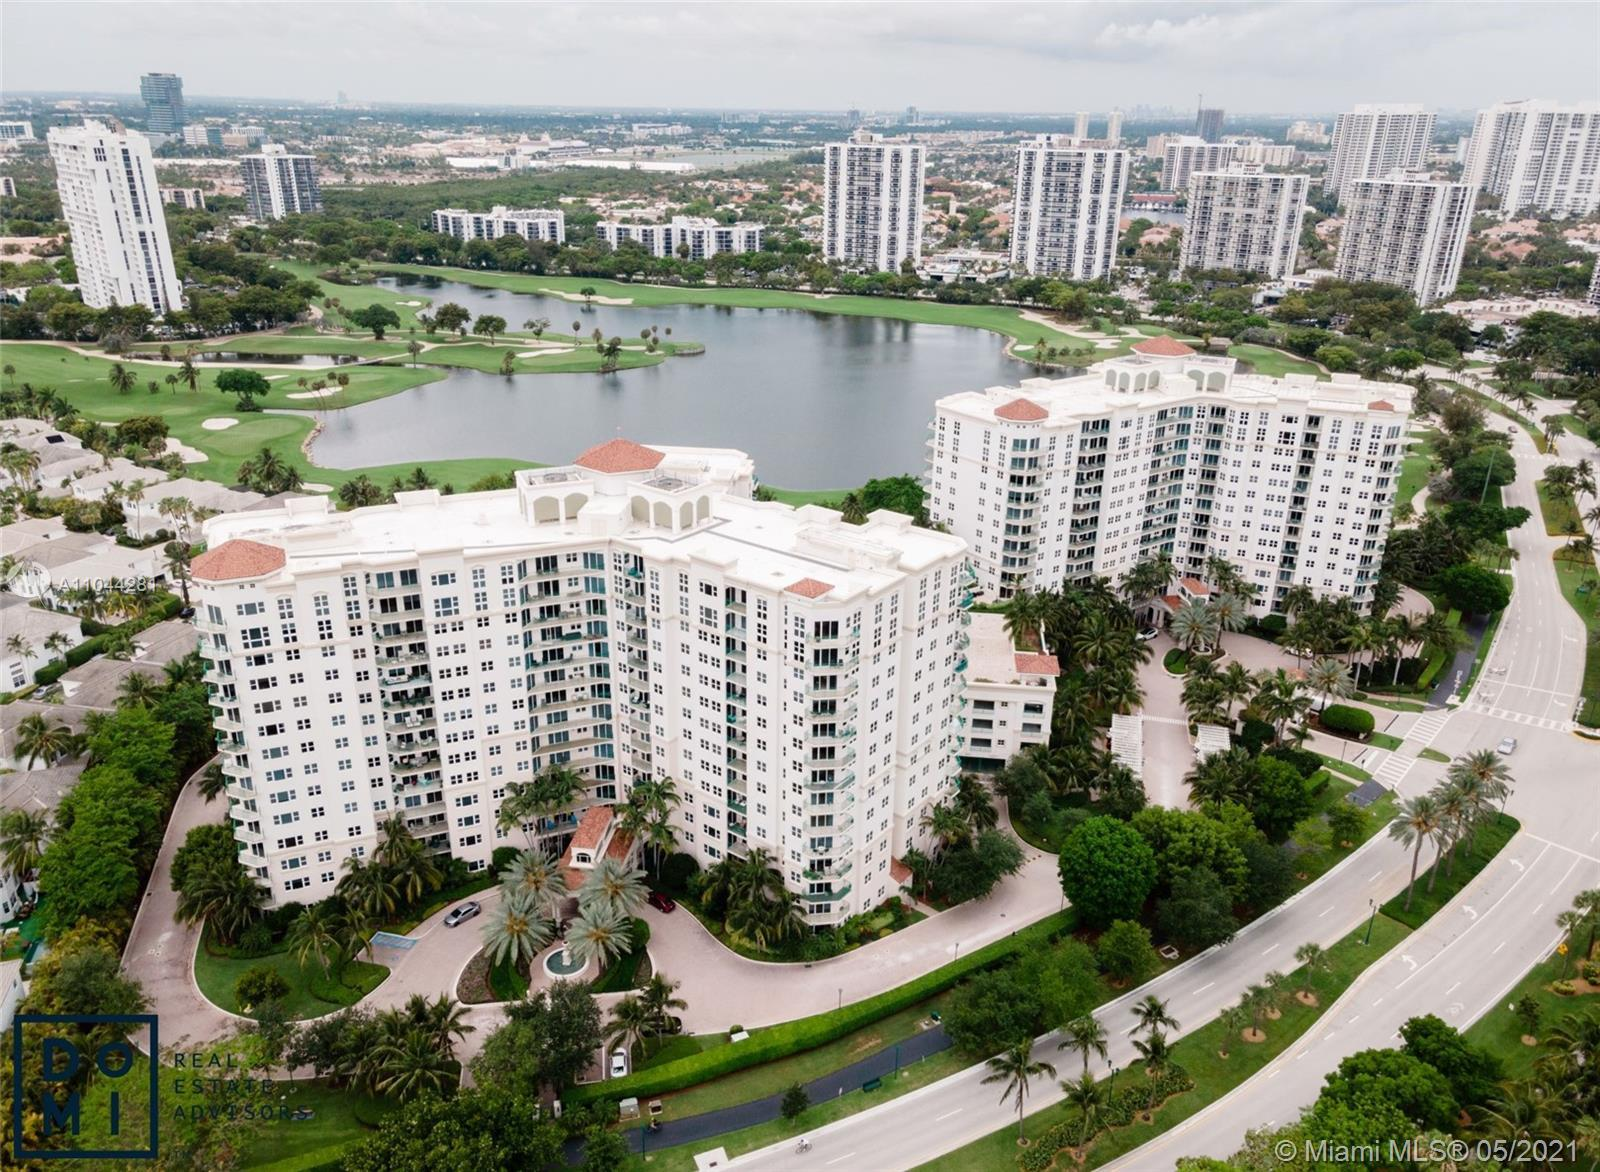 Welcome to Turnberry Village located next to the famed Turnberry Golf Course in Aventura. Unit offer